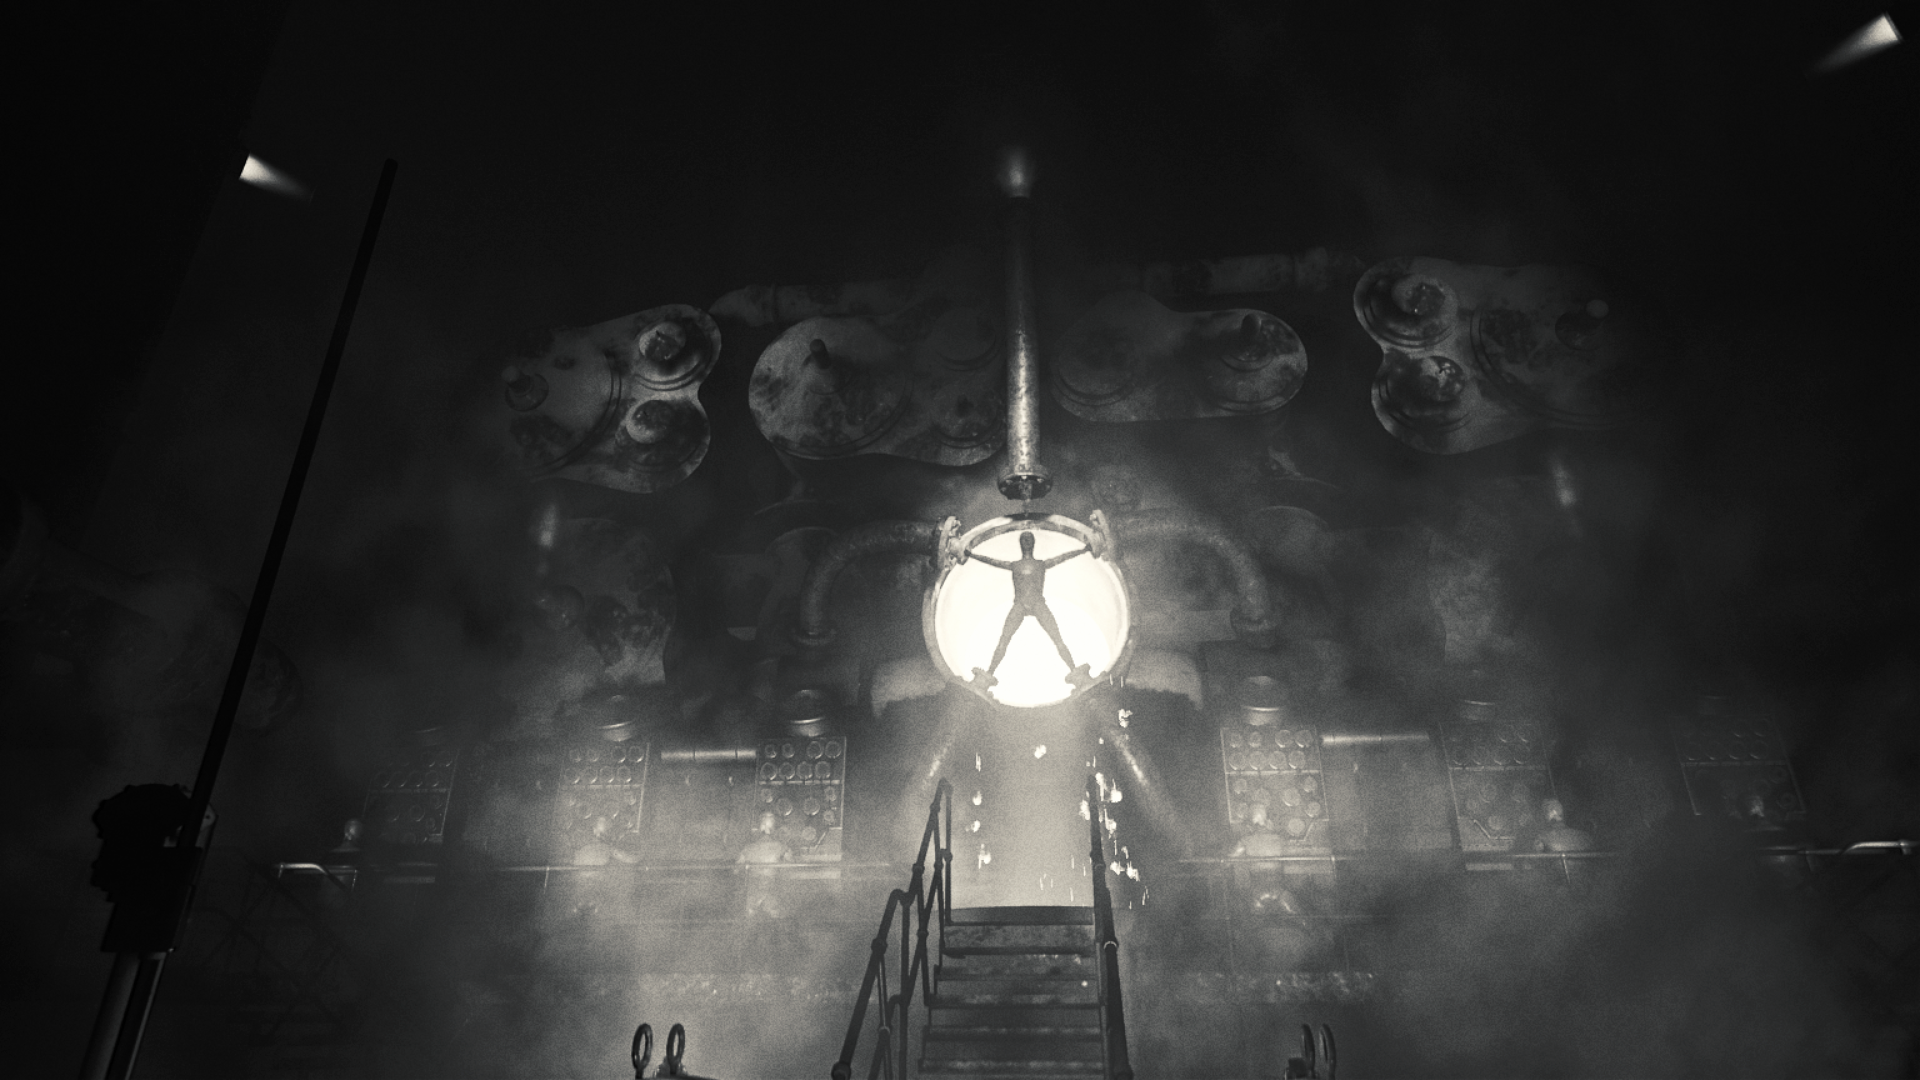 Pin By On Vg Layers Of Fear Layers Of Fear Weird Art Old Movies